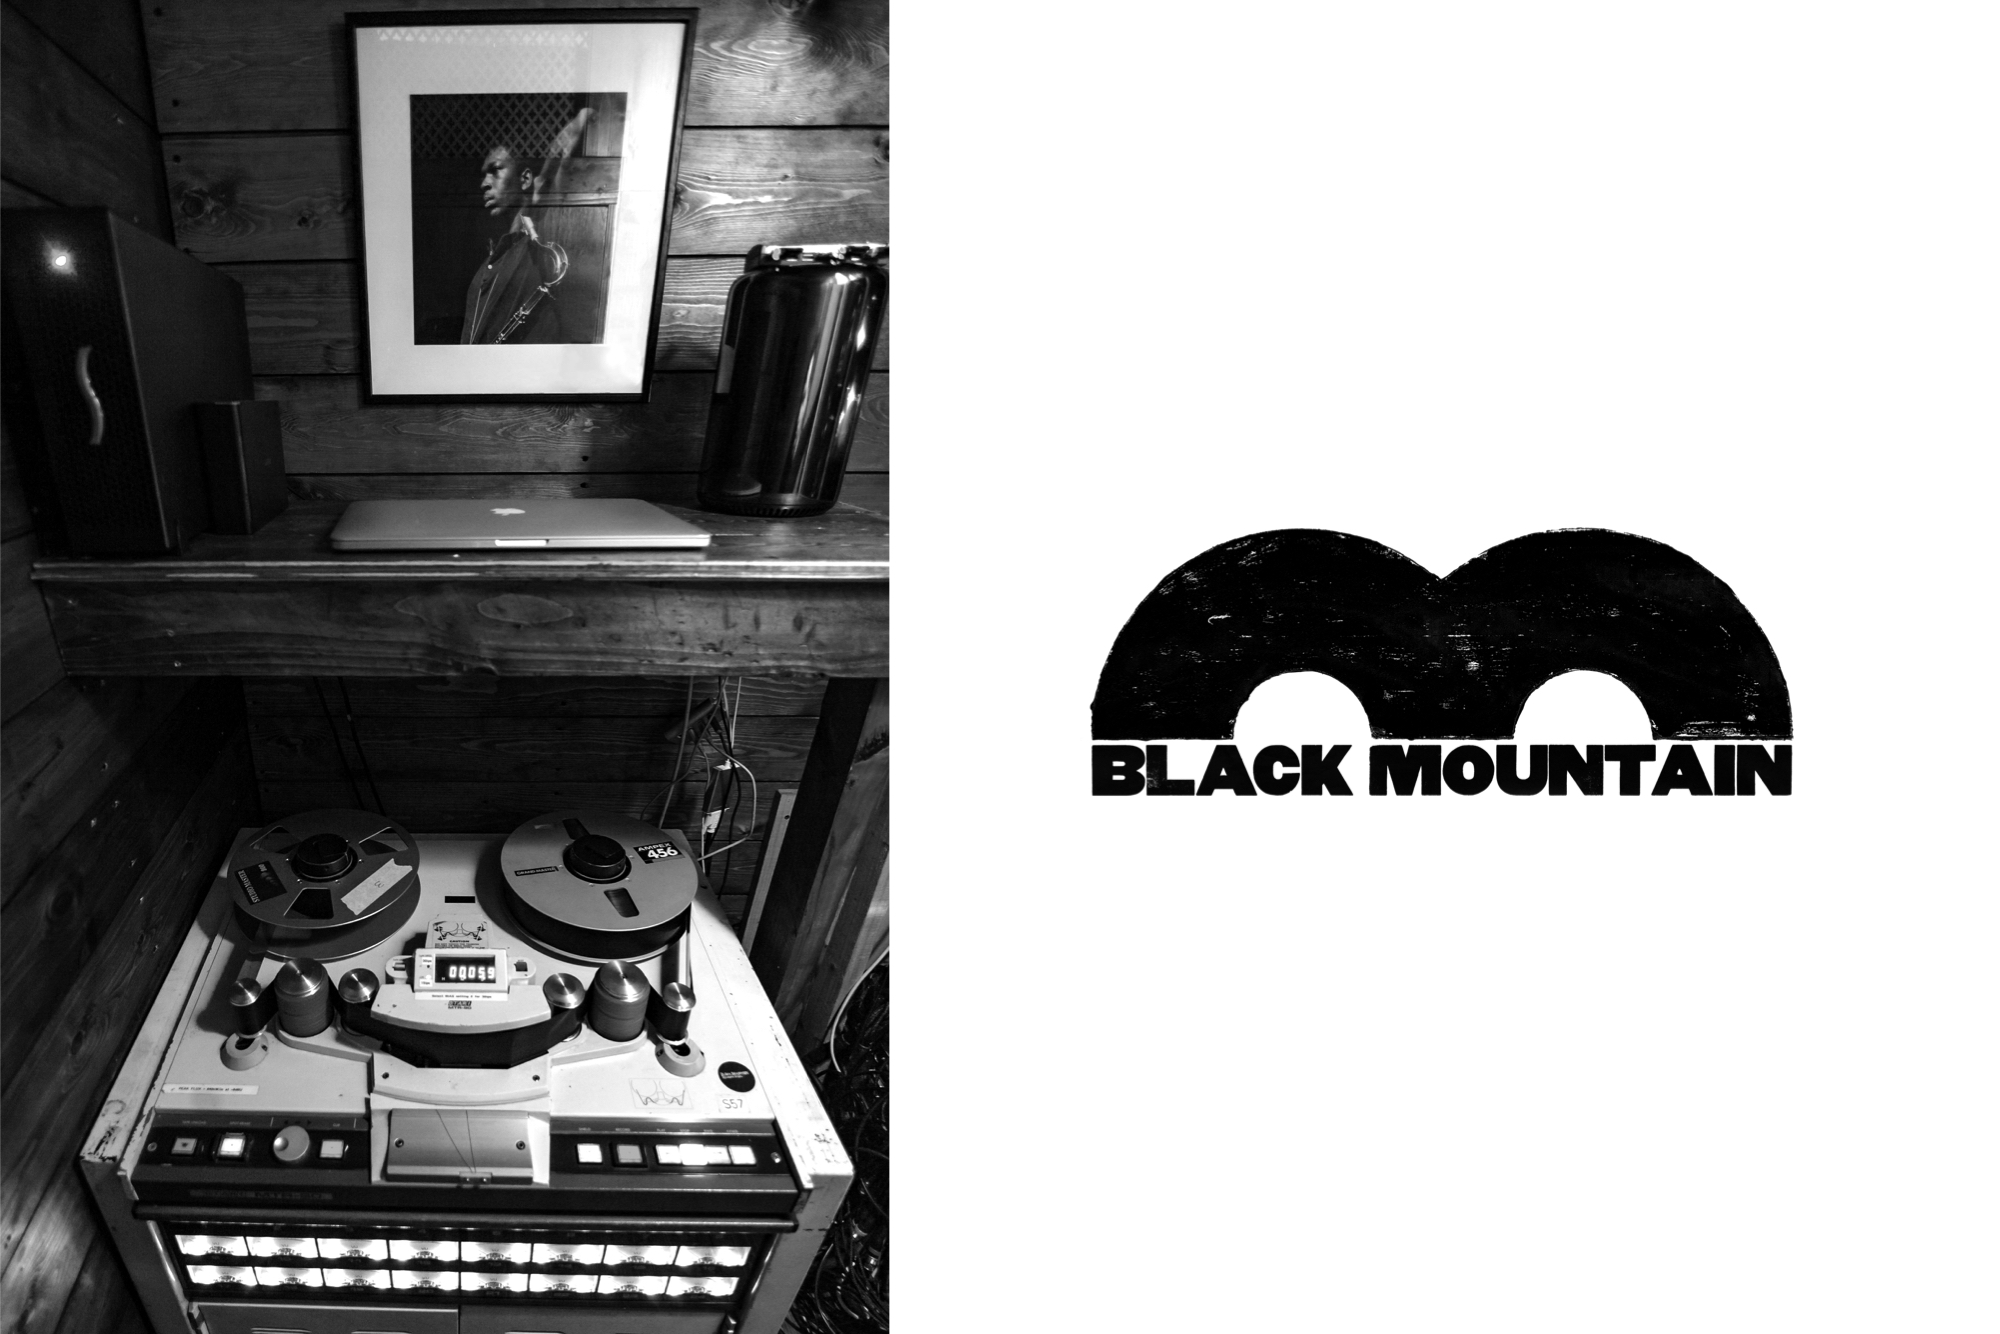 Cover image: Black Mountain